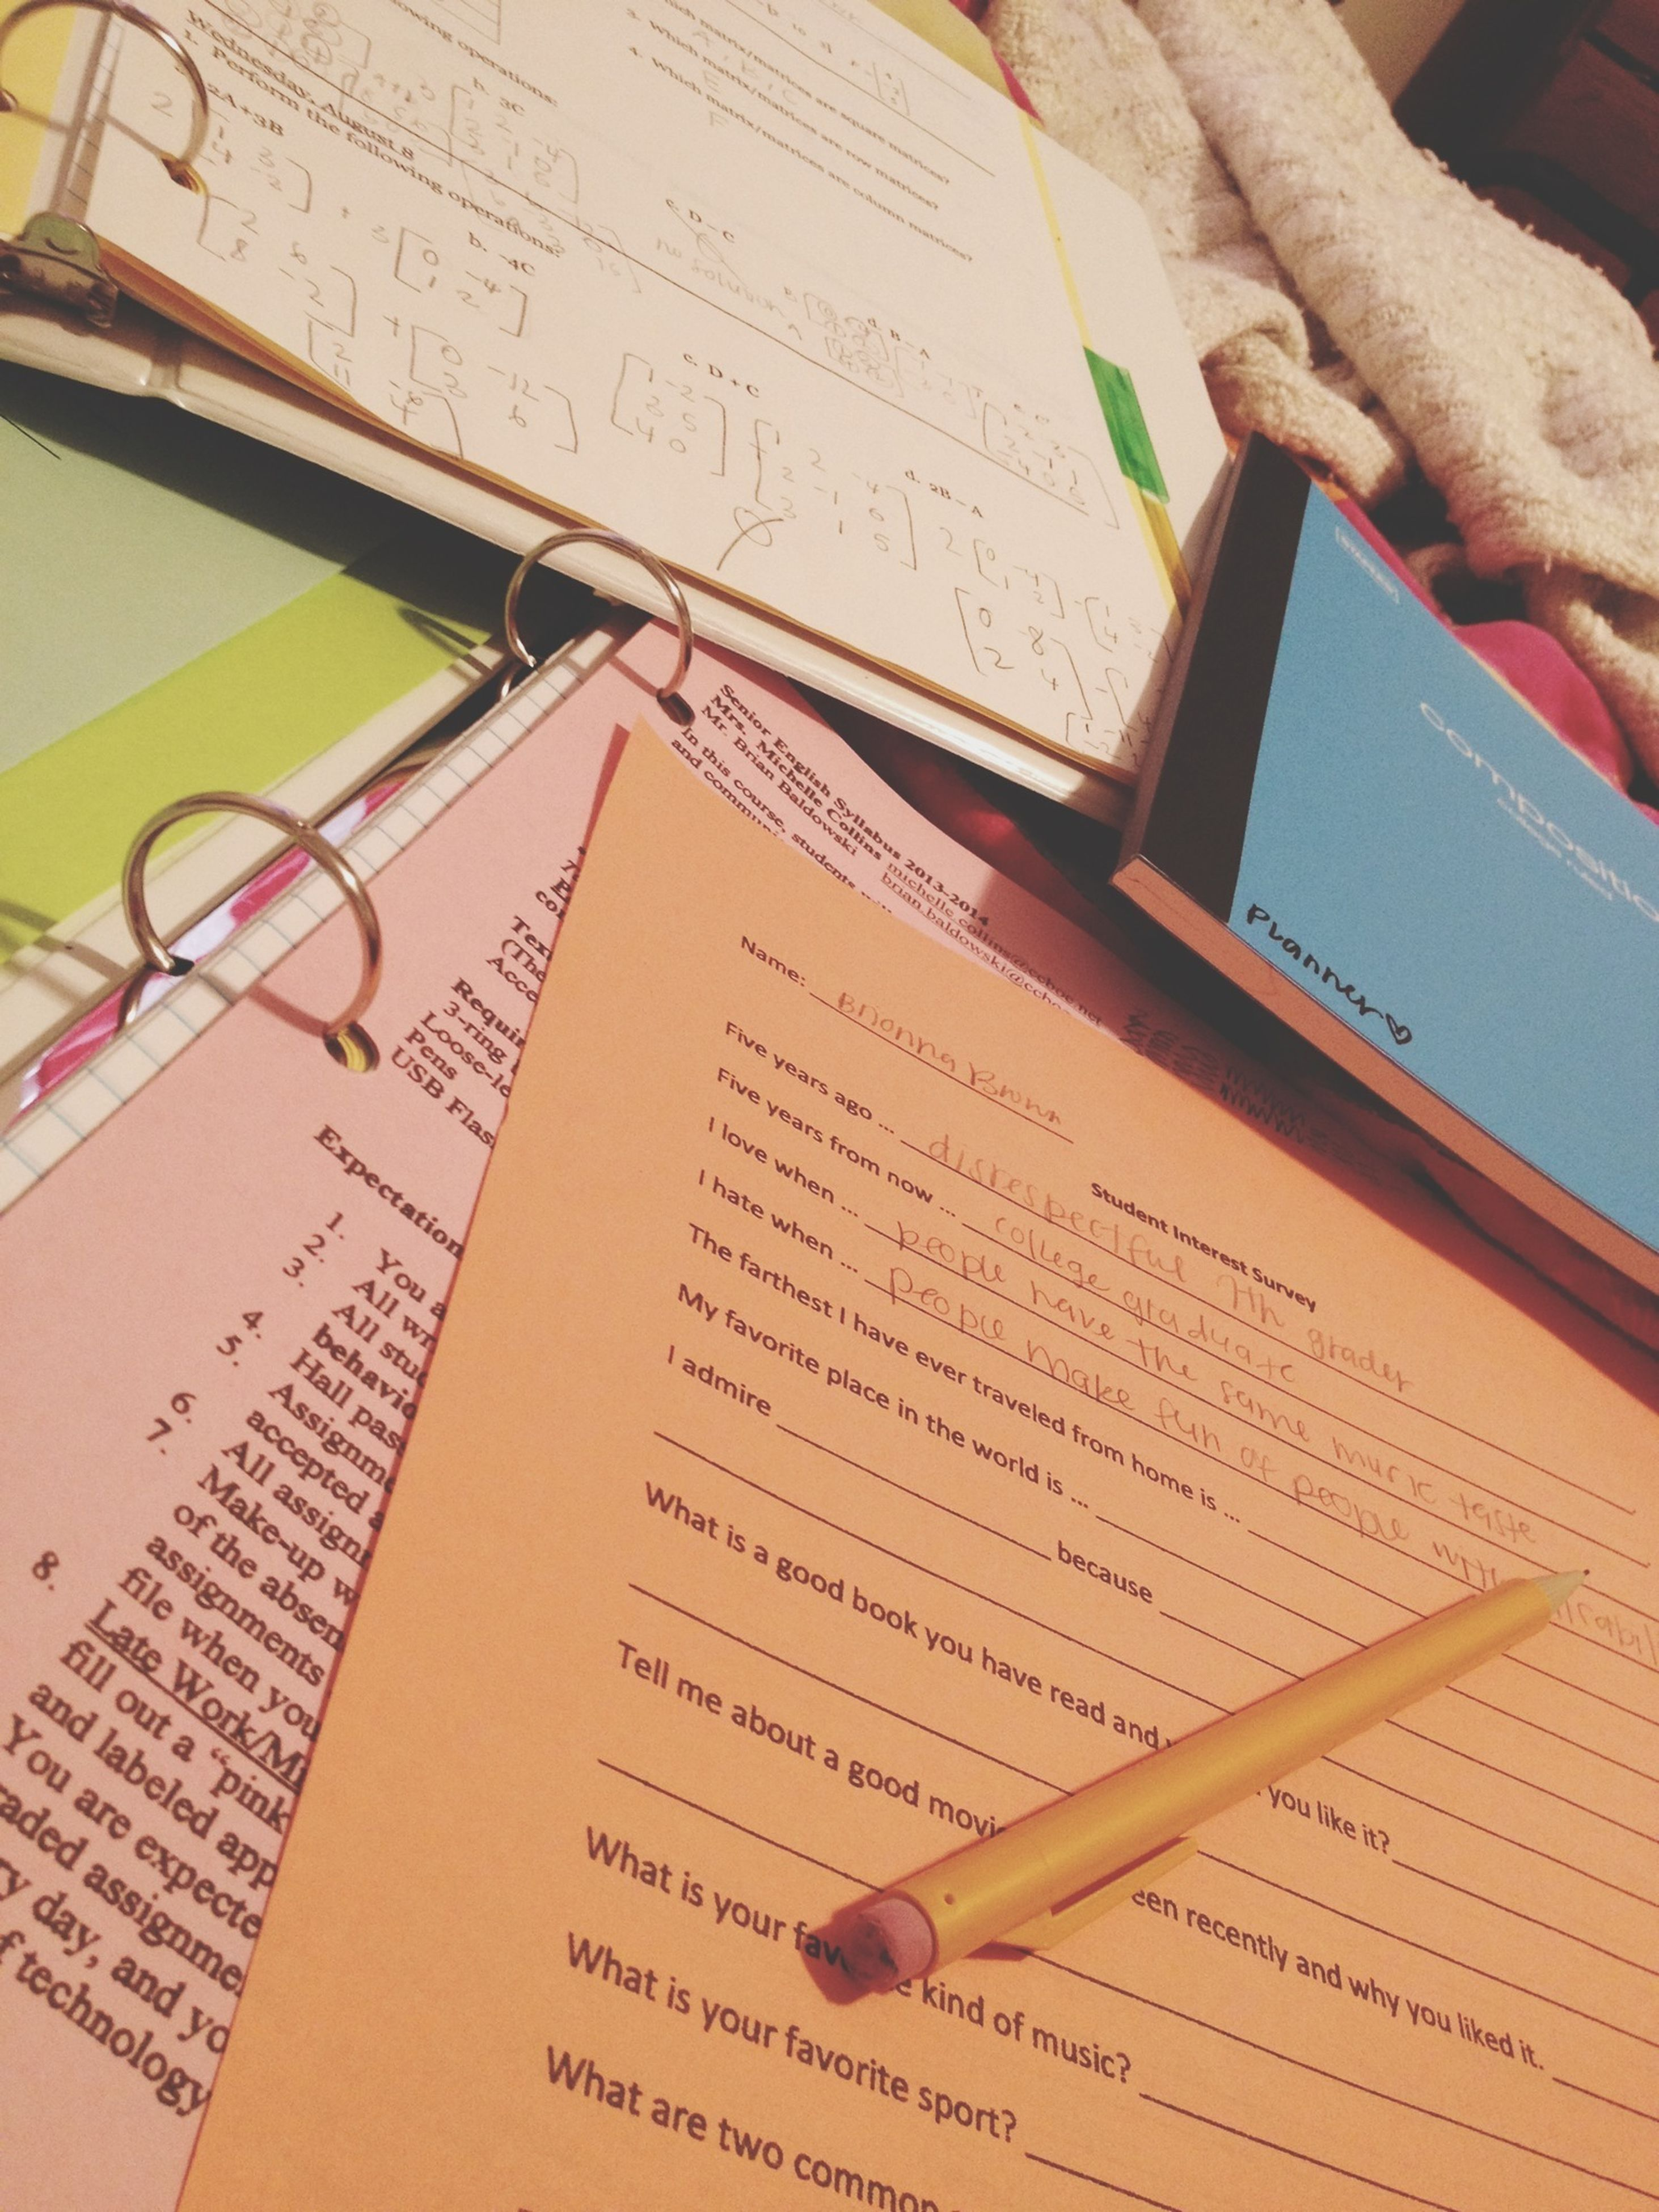 paper, book, indoors, education, high angle view, table, communication, text, pen, document, part of, cropped, close-up, pencil, person, western script, tilt, page, writing, learning